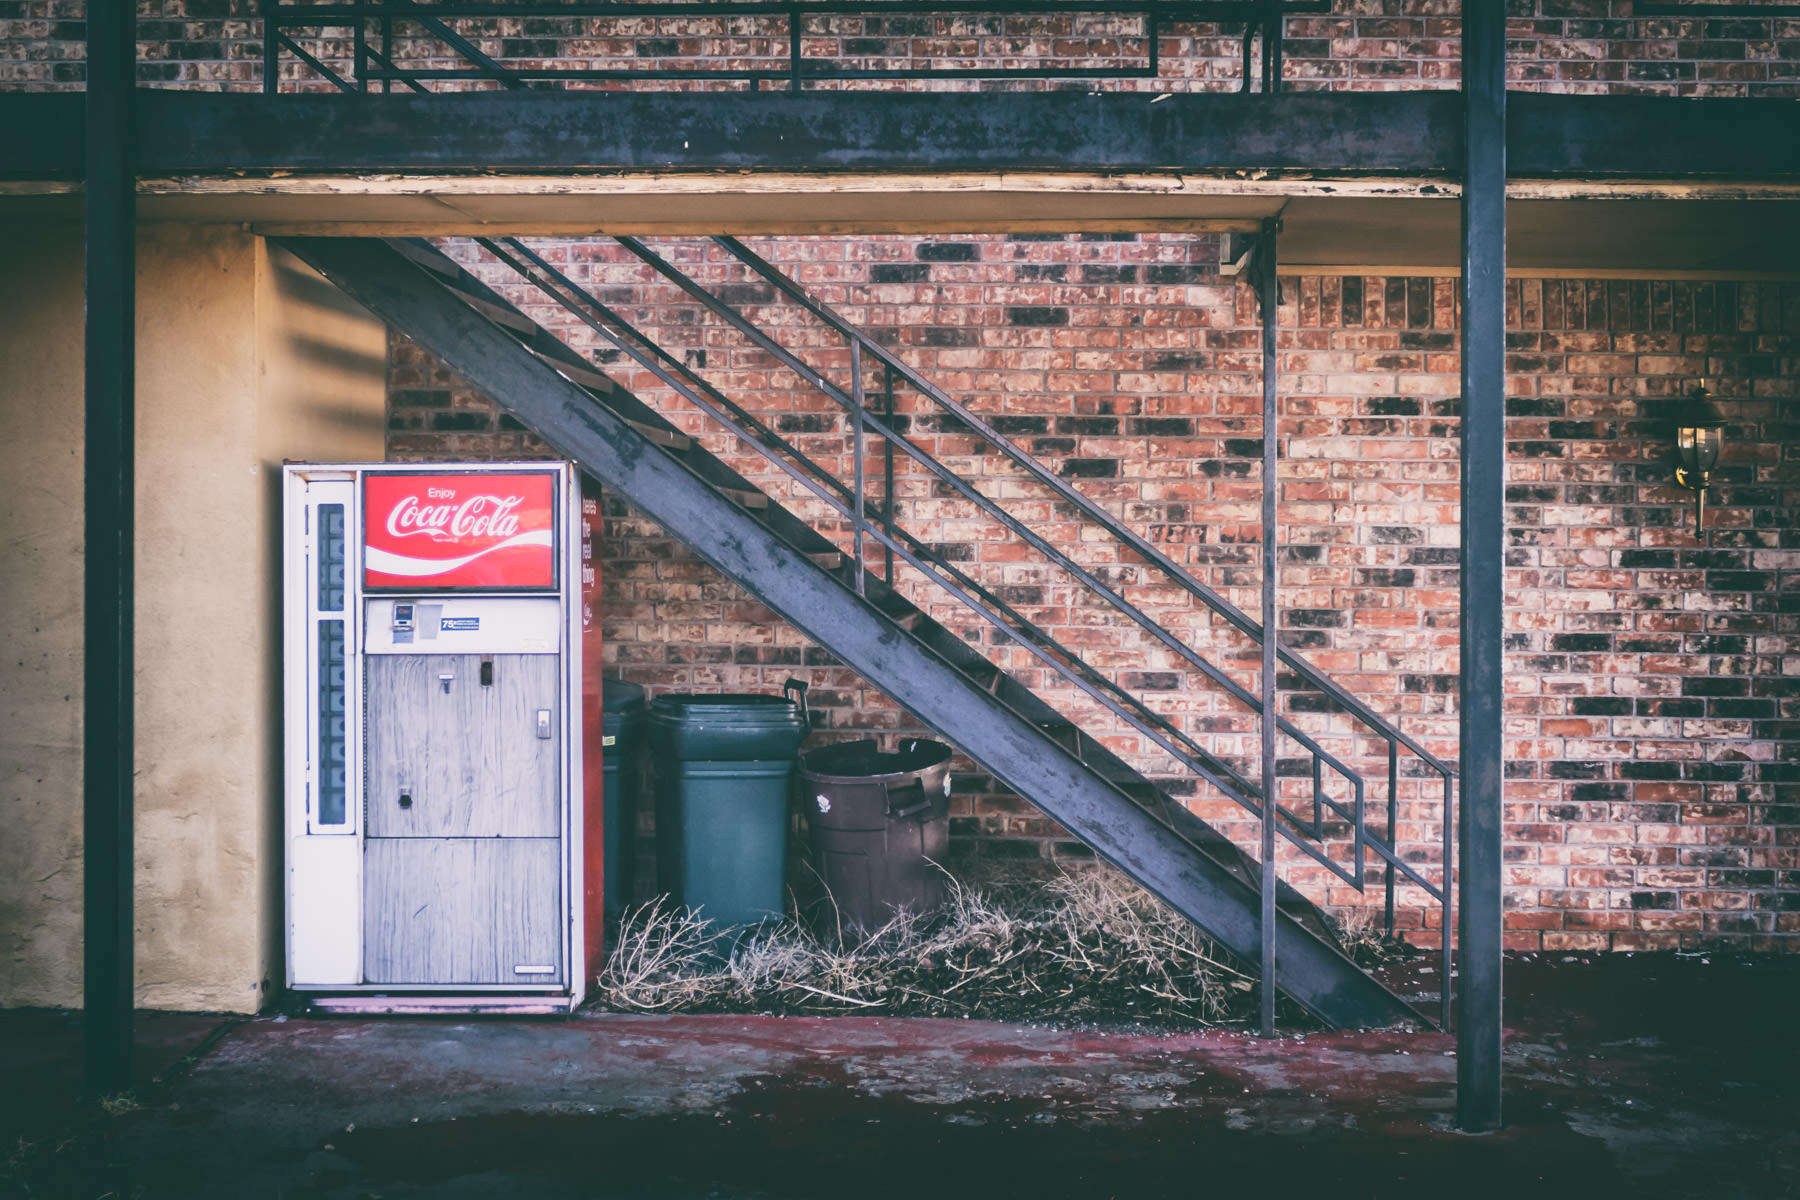 An old Coca-Cola vending machine outside a roadside motel in Adrian, Texas.